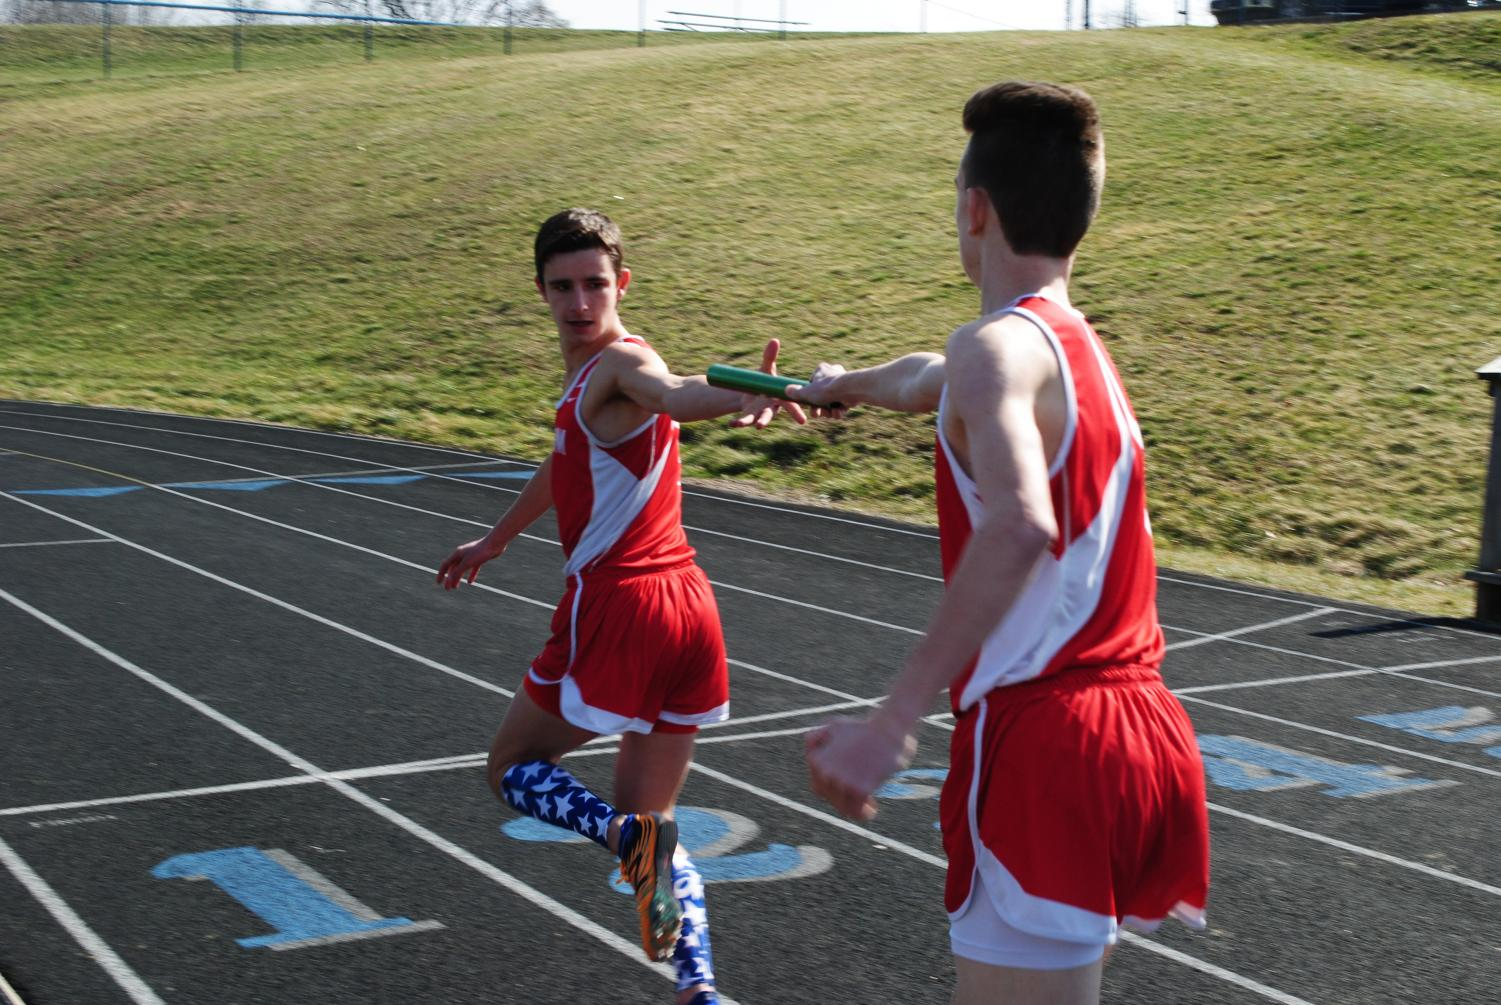 Then sophomore Ethan Paxton hands the baton to then senior Jarrett Boyd during a meet at Central Valley back in 2017.